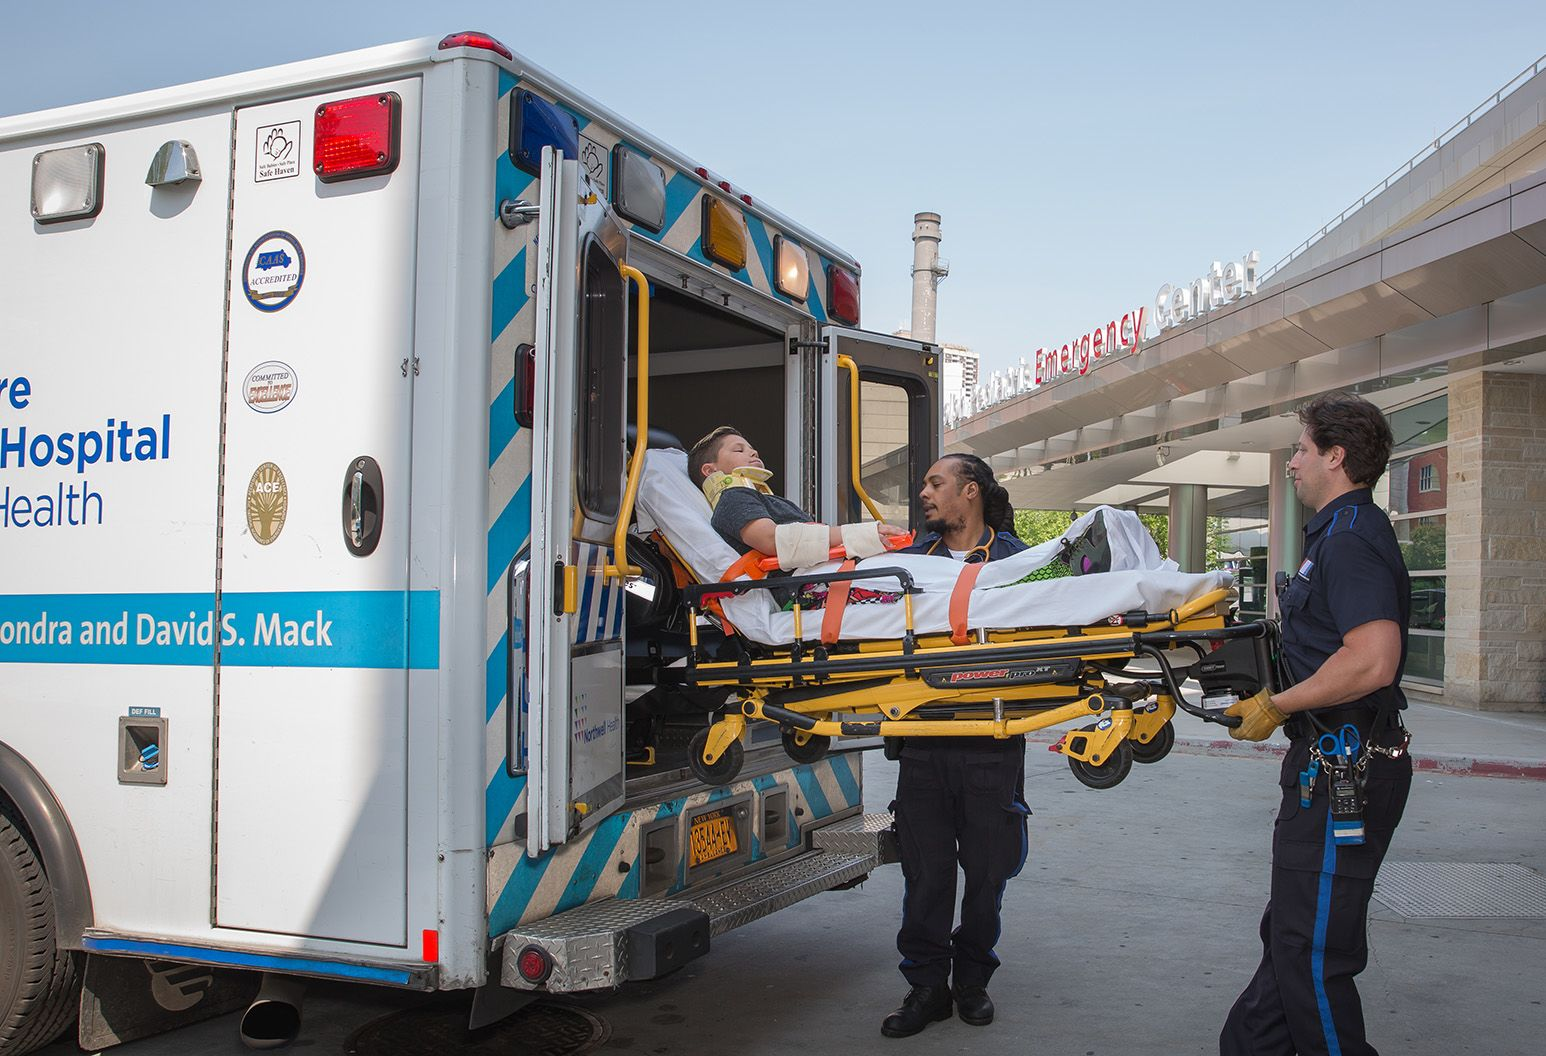 Two emergency medical services professionals lift a boy on a gurney out of an ambulance. They are in front of an emergency department of a hospital.